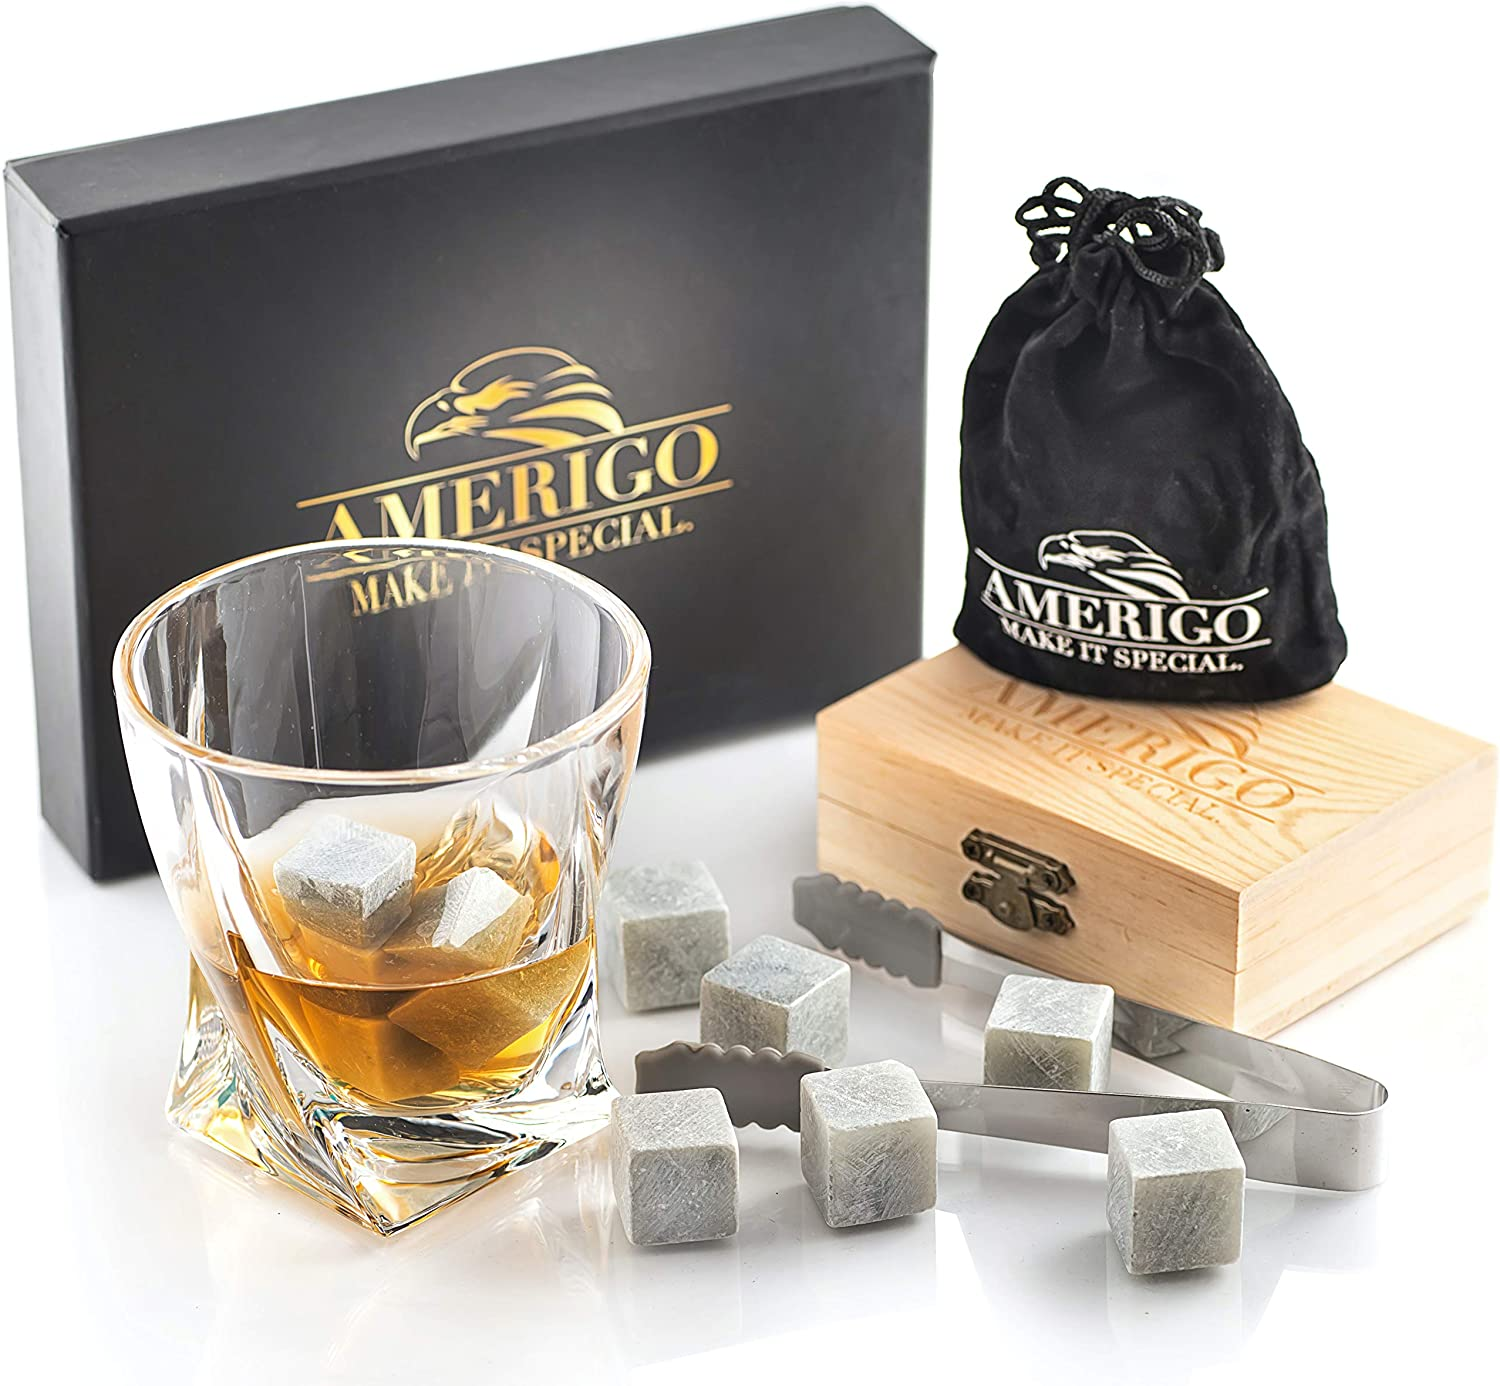 Wine Vodka Cocktails or any other beverage Whiskey Stones- Reusable whisky ice stone for Whiskey